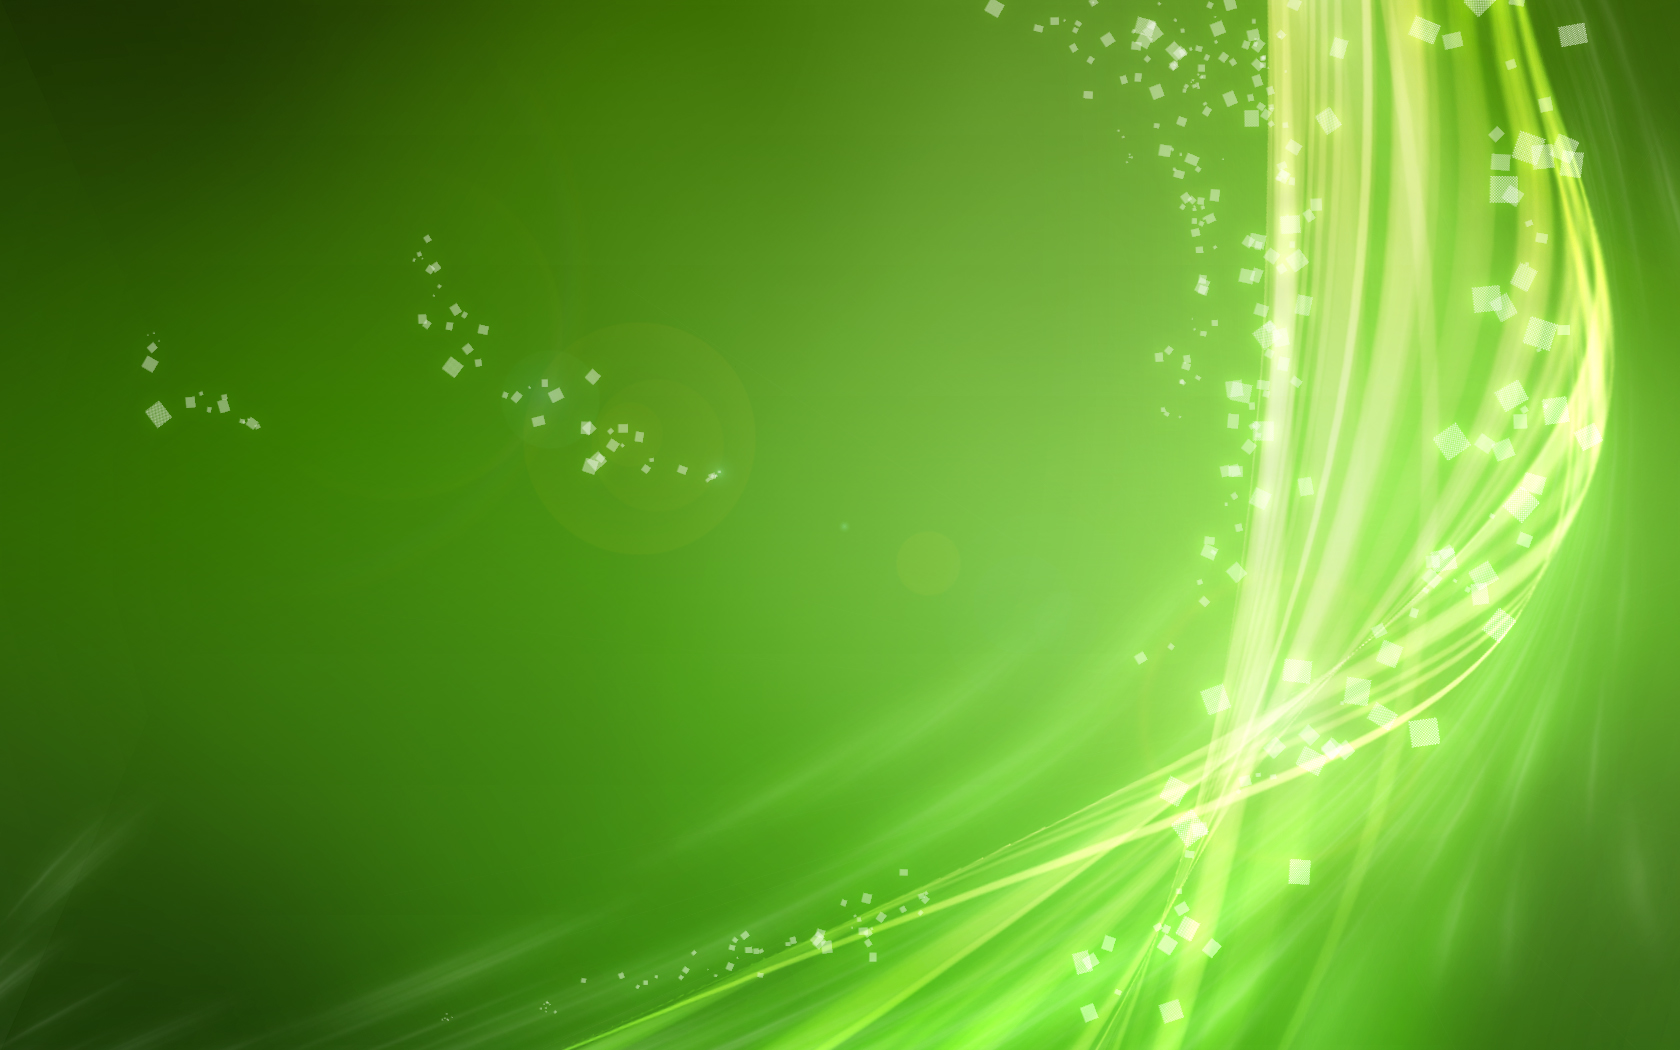 Green Wallpaper - Colors Wallpaper (34511109) - Fanpop fanclubs